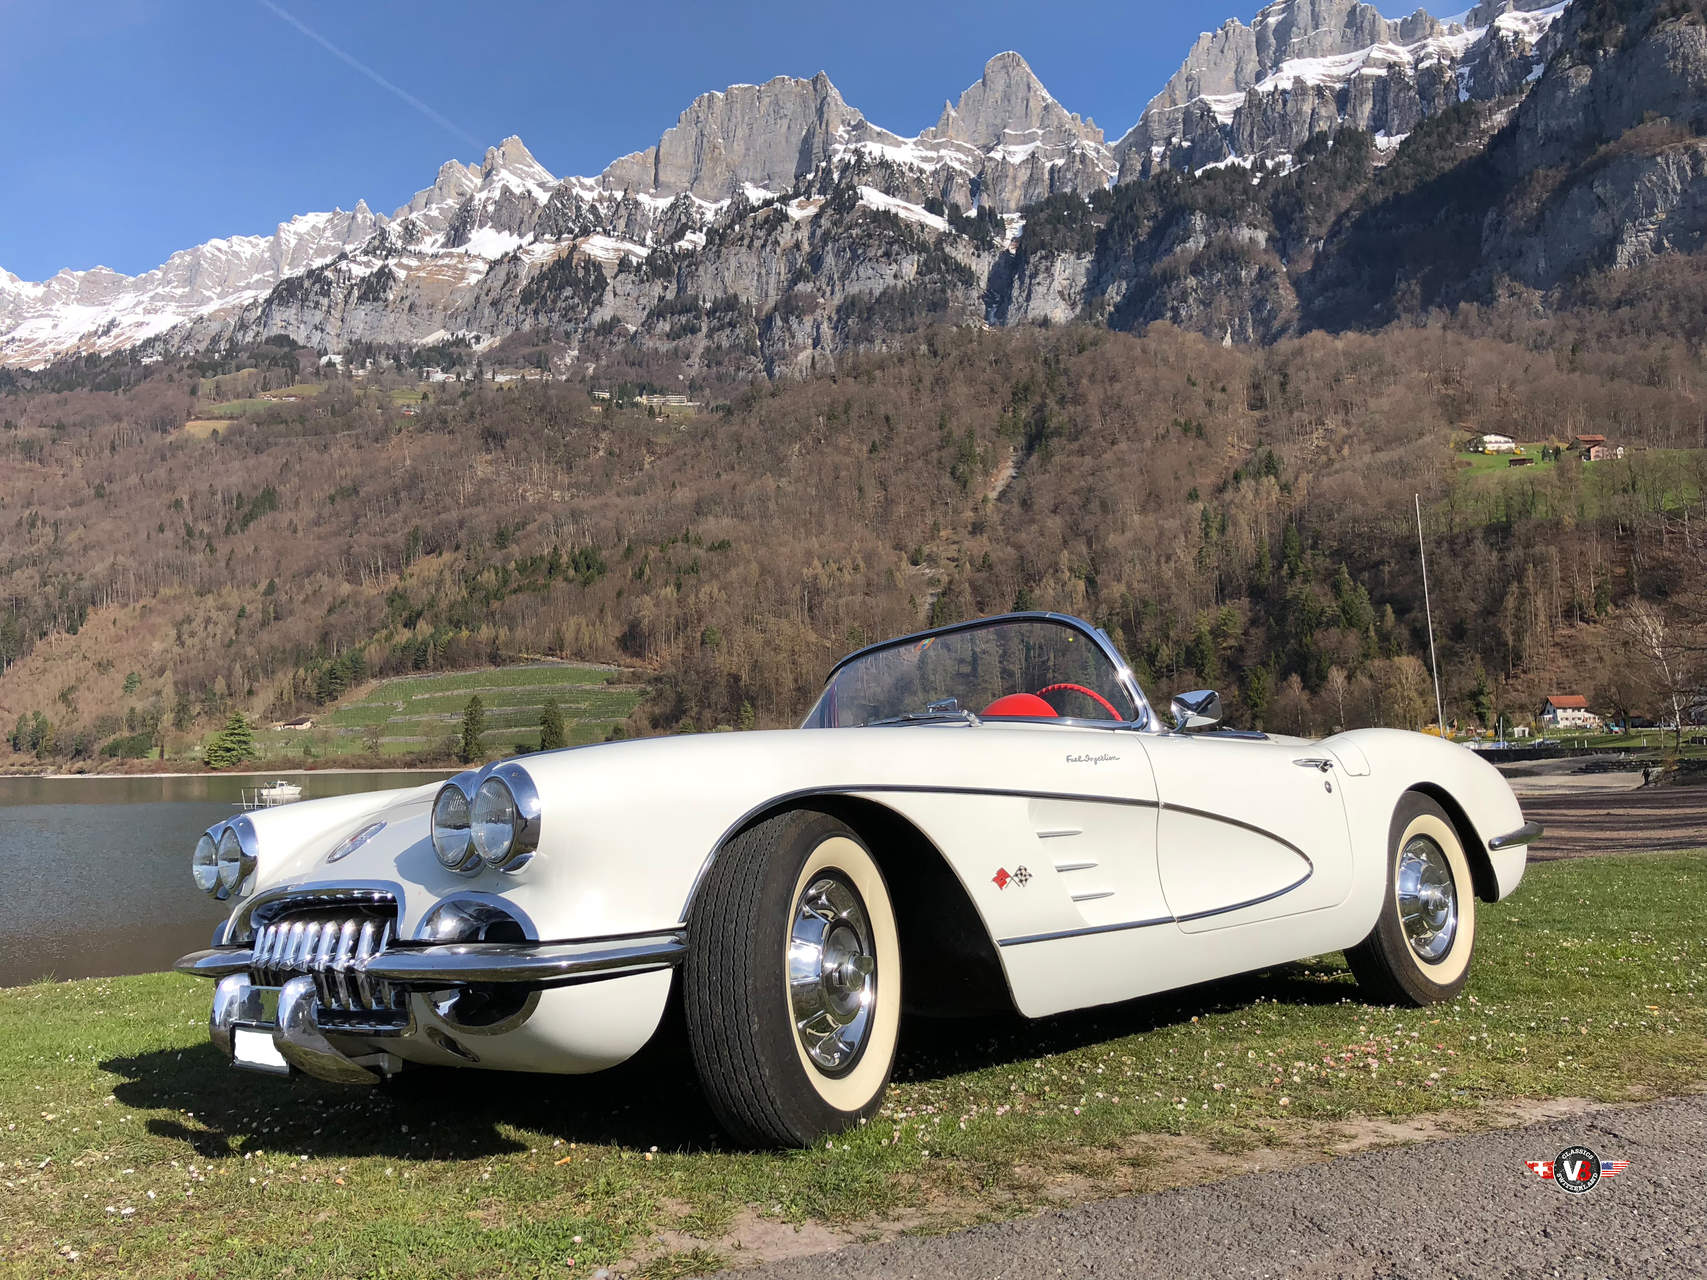 1958 Chevrolet Corvette C1 Convertible